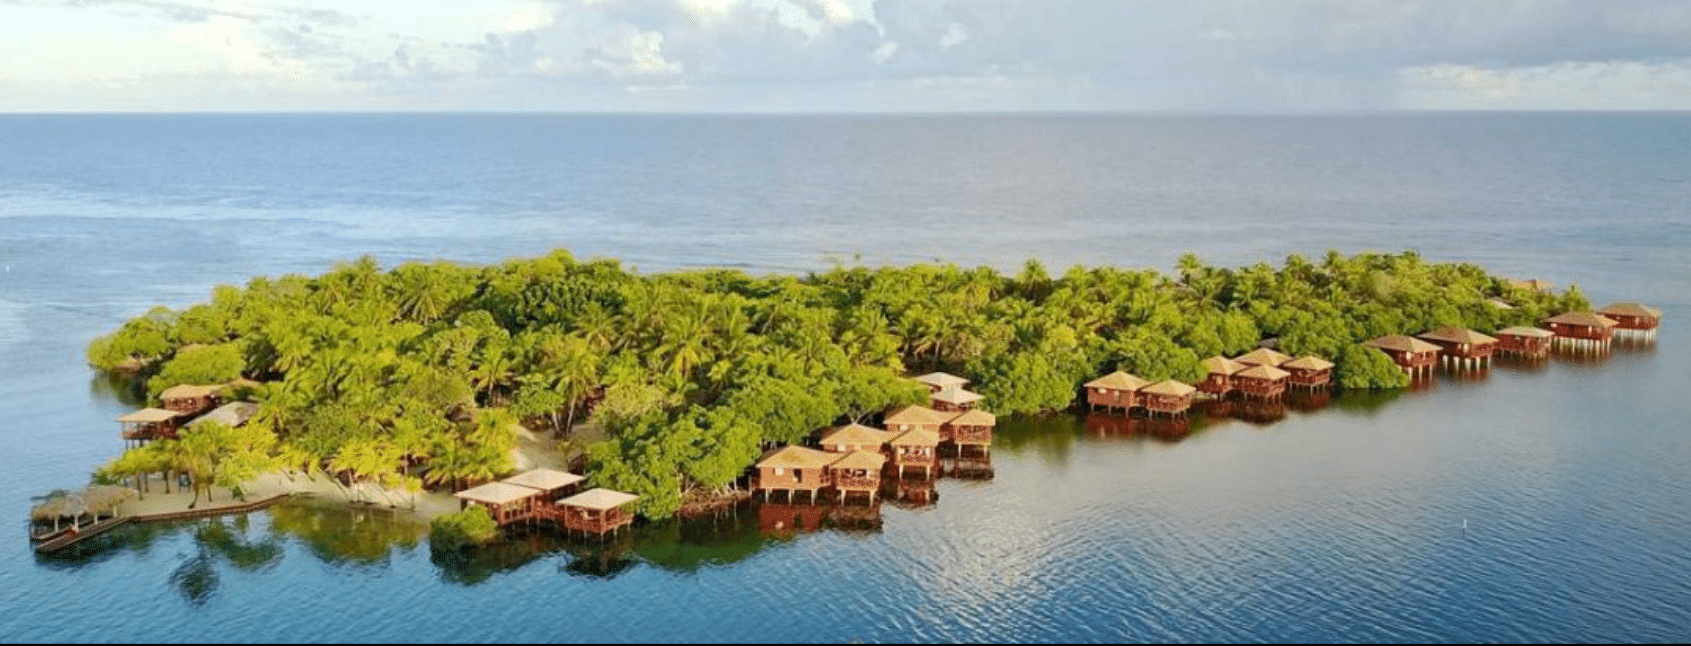 Anthony's Key Roatan Celebrating Its 50th Anniversary With A Special Deal